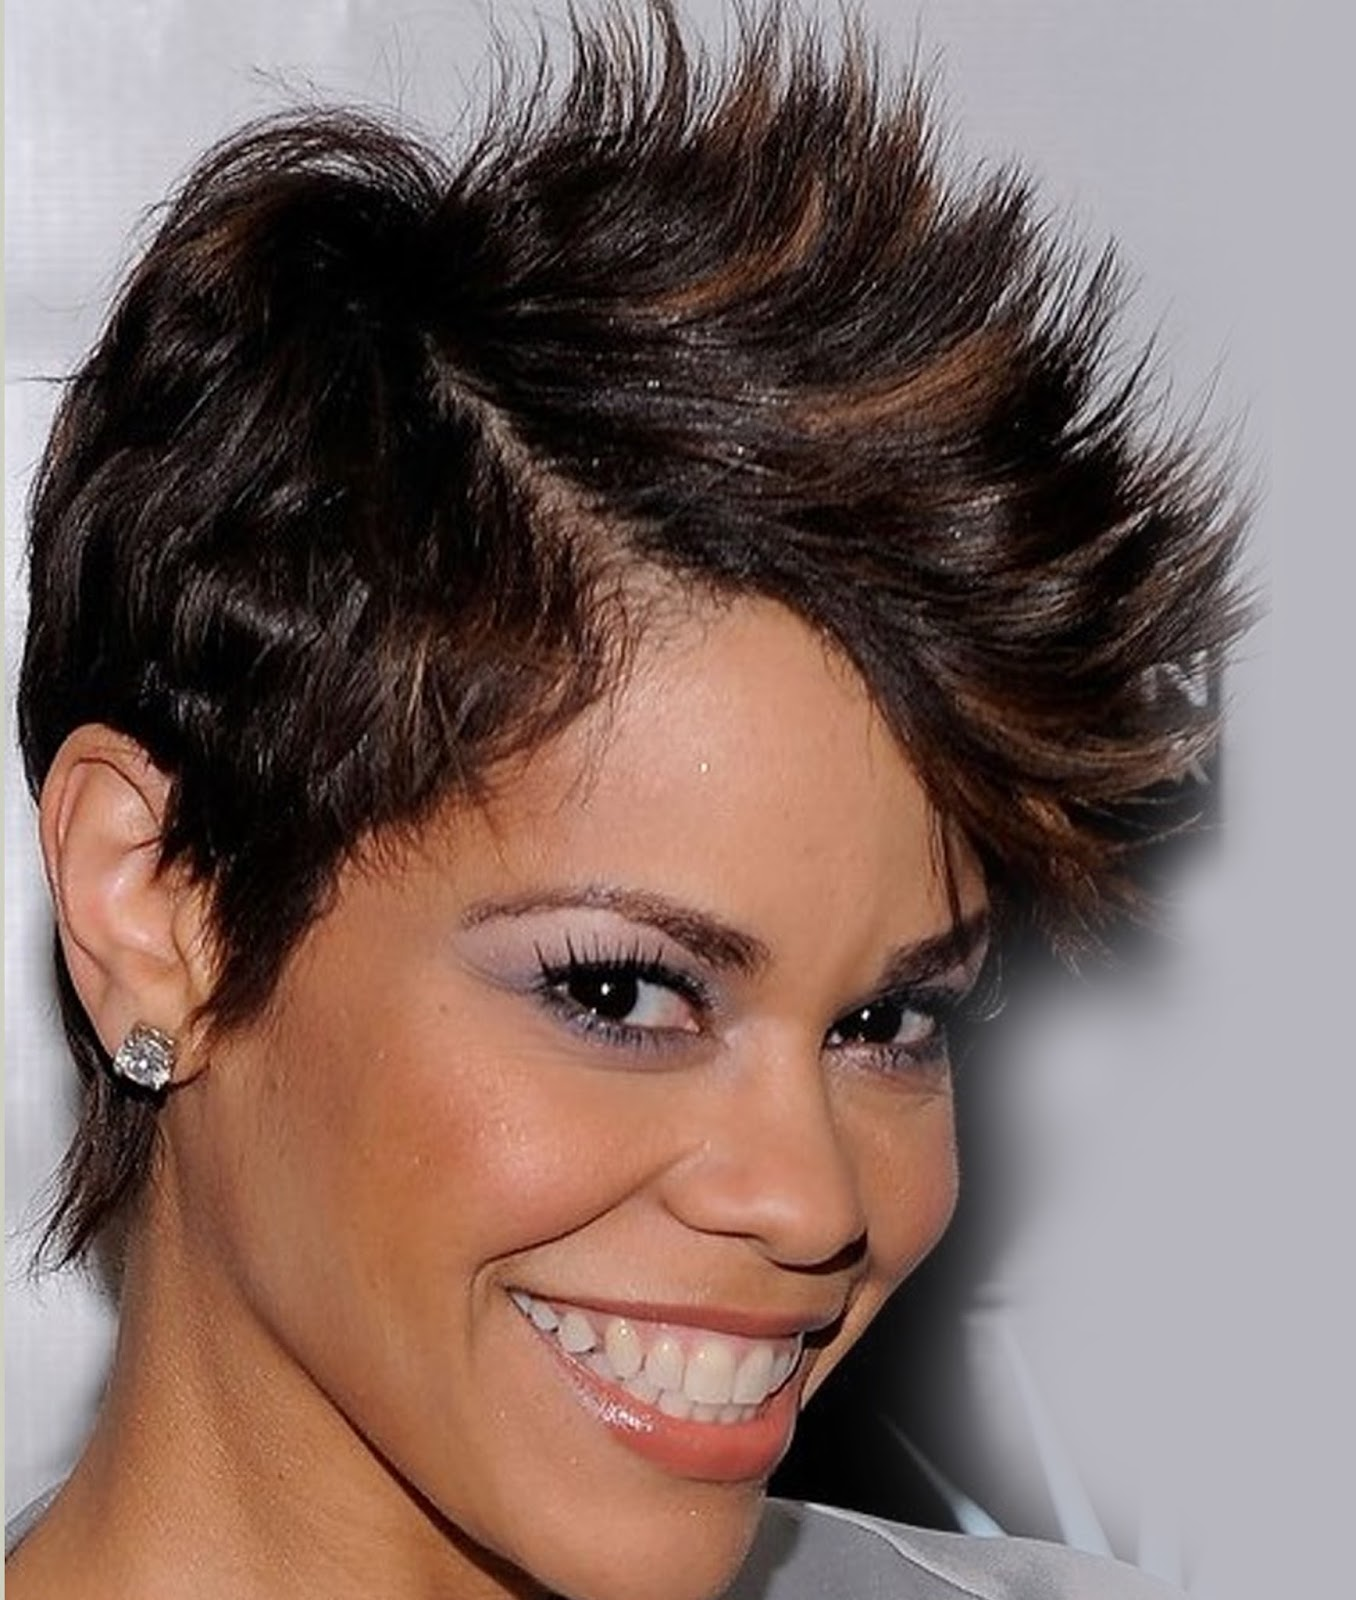 Mohawk Hairstyles For Women Modern Look Hairstyles Spot